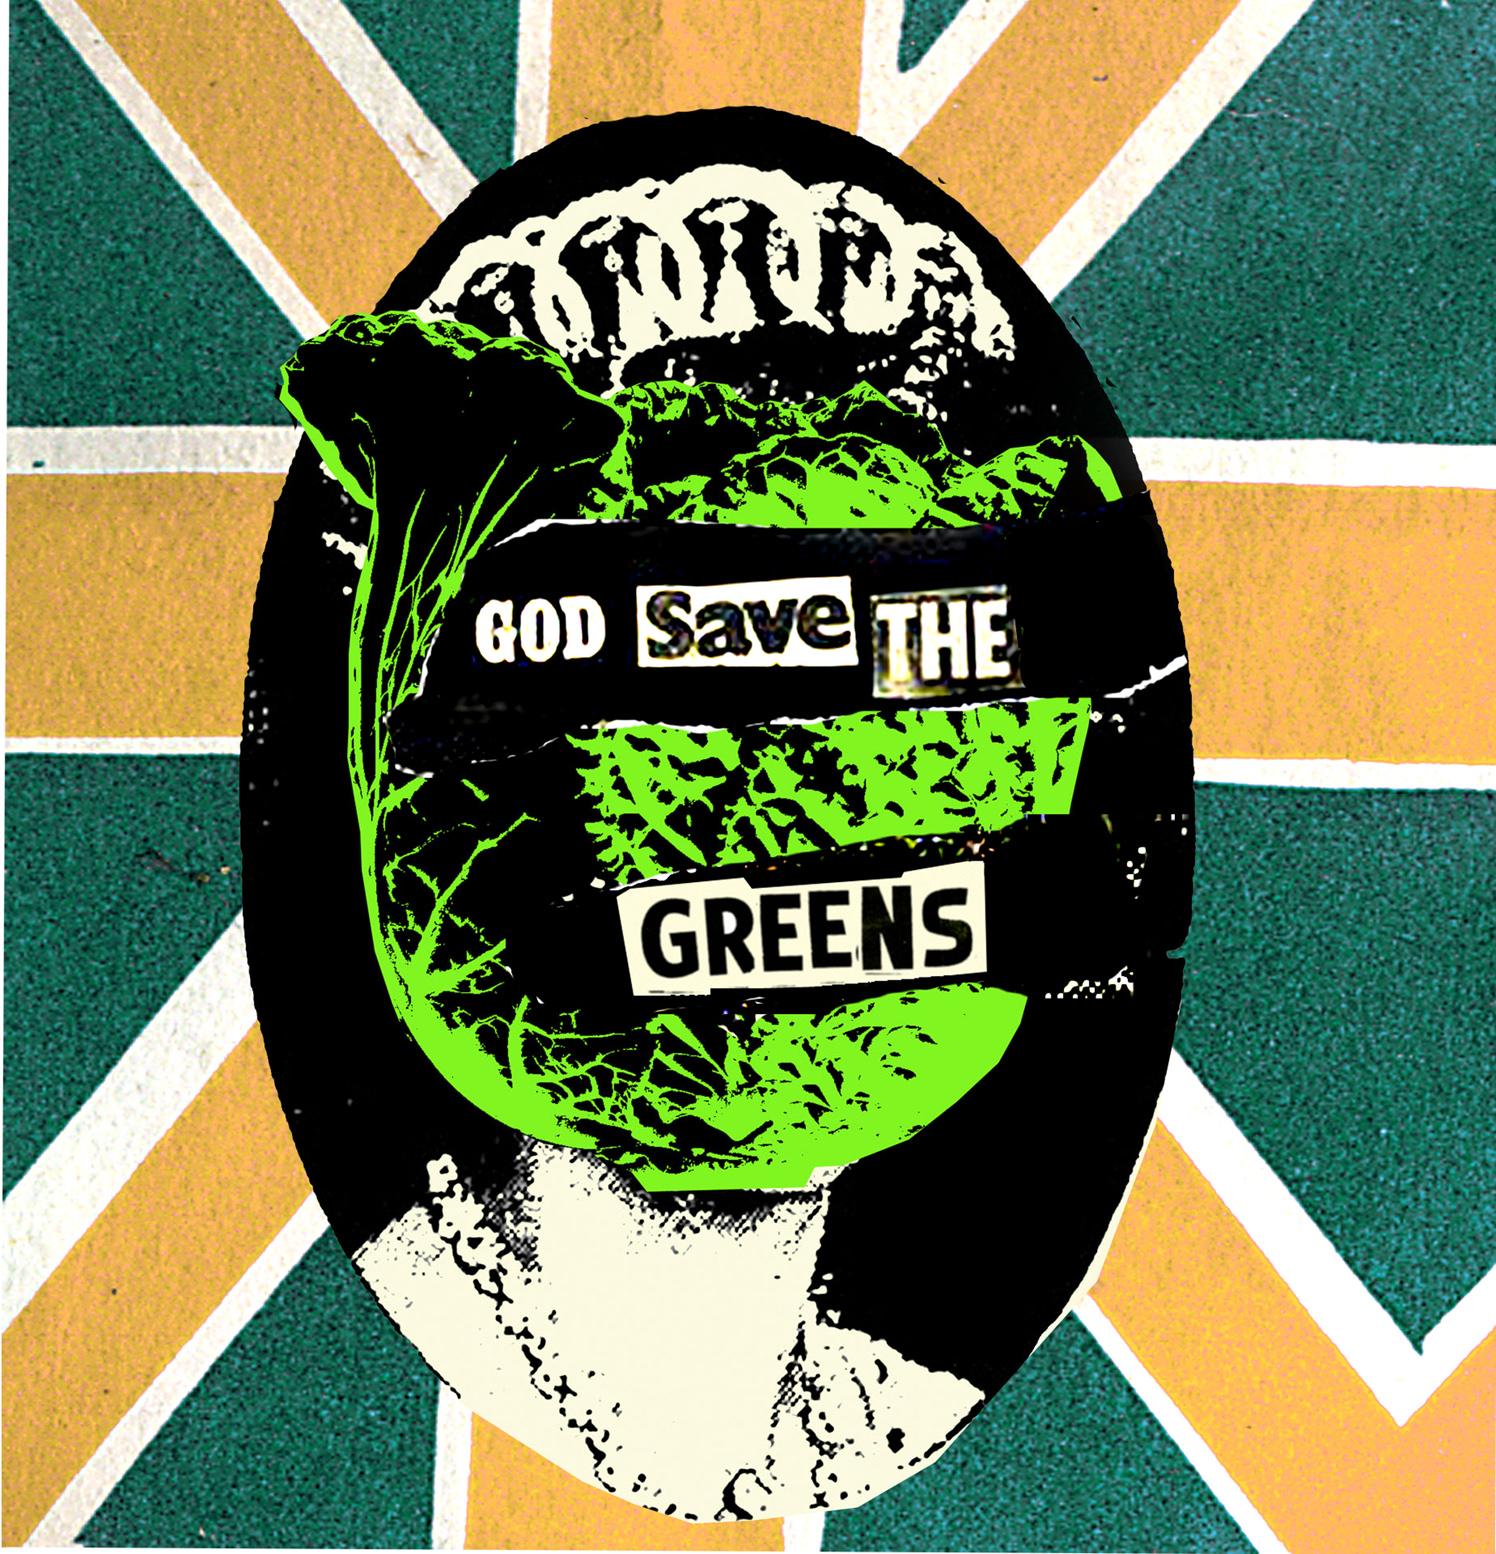 god save the greens